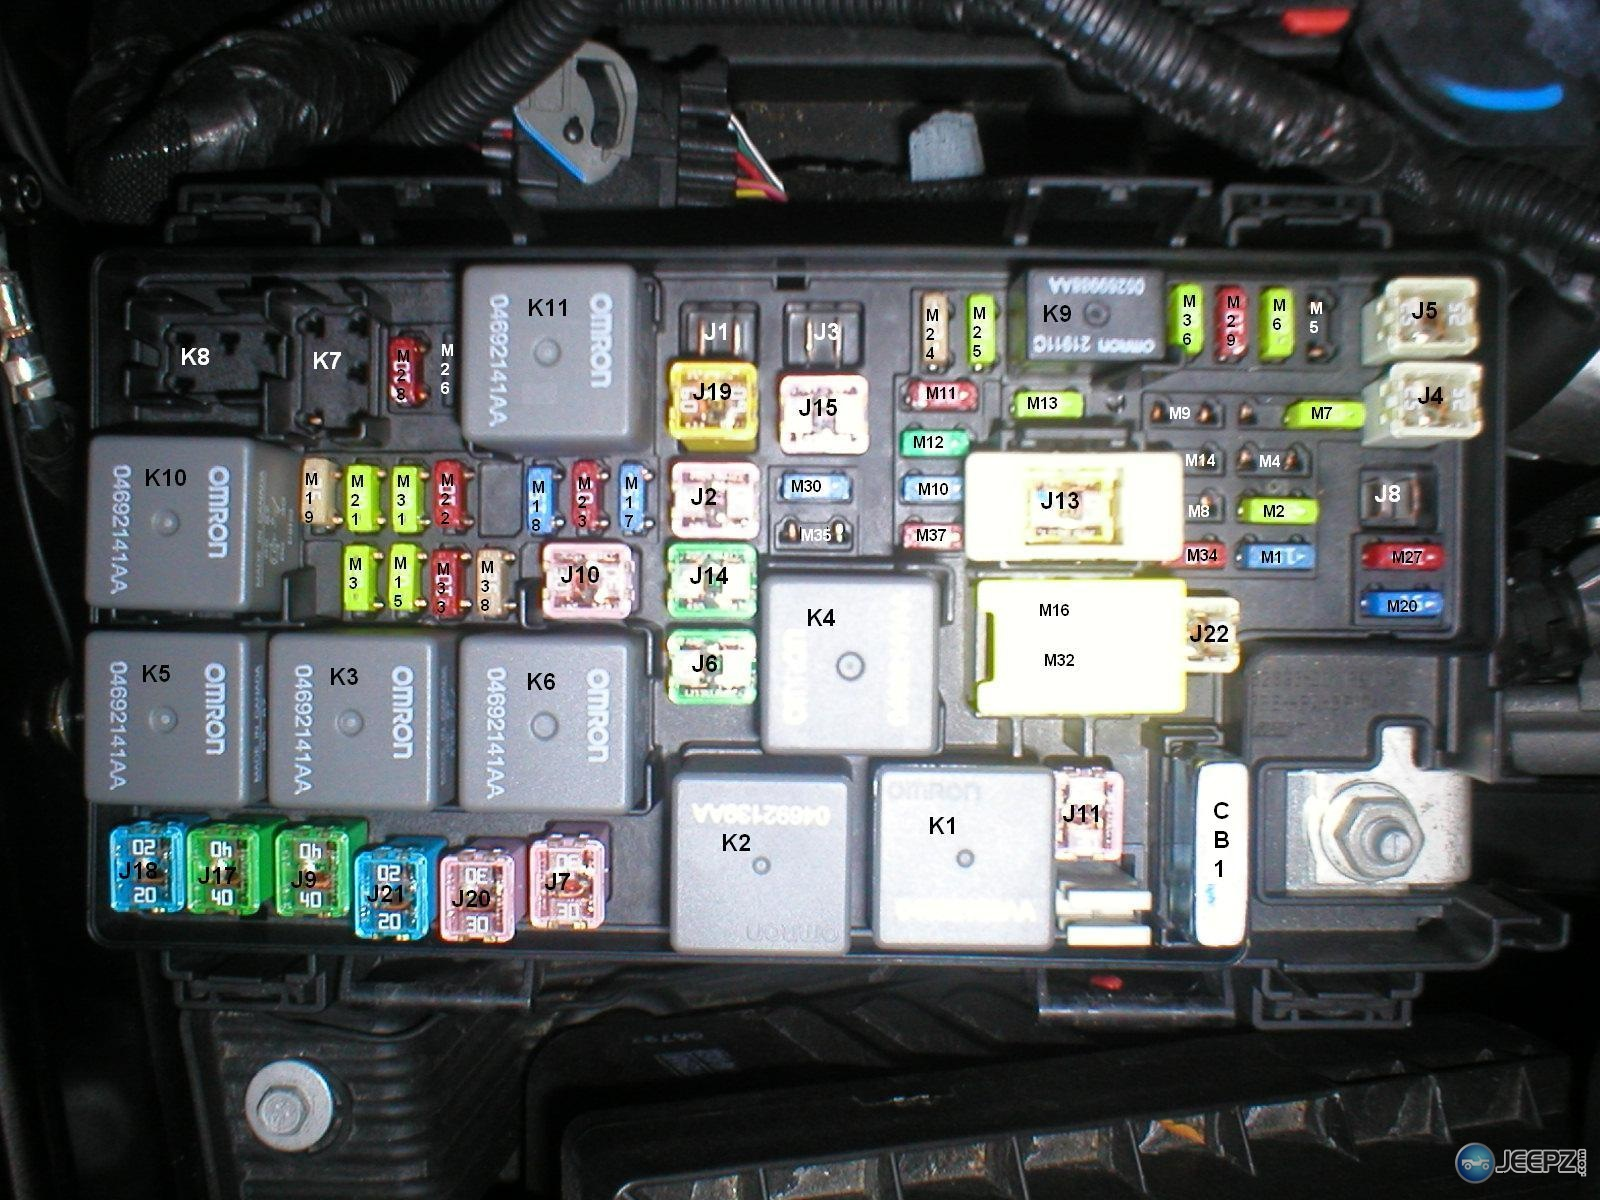 2008 jeep liberty fuse box wiring diagram2008 jeep liberty fuse box wiring diagram2008 jeep liberty fuse box radio wiring diagramjeep jk 2009